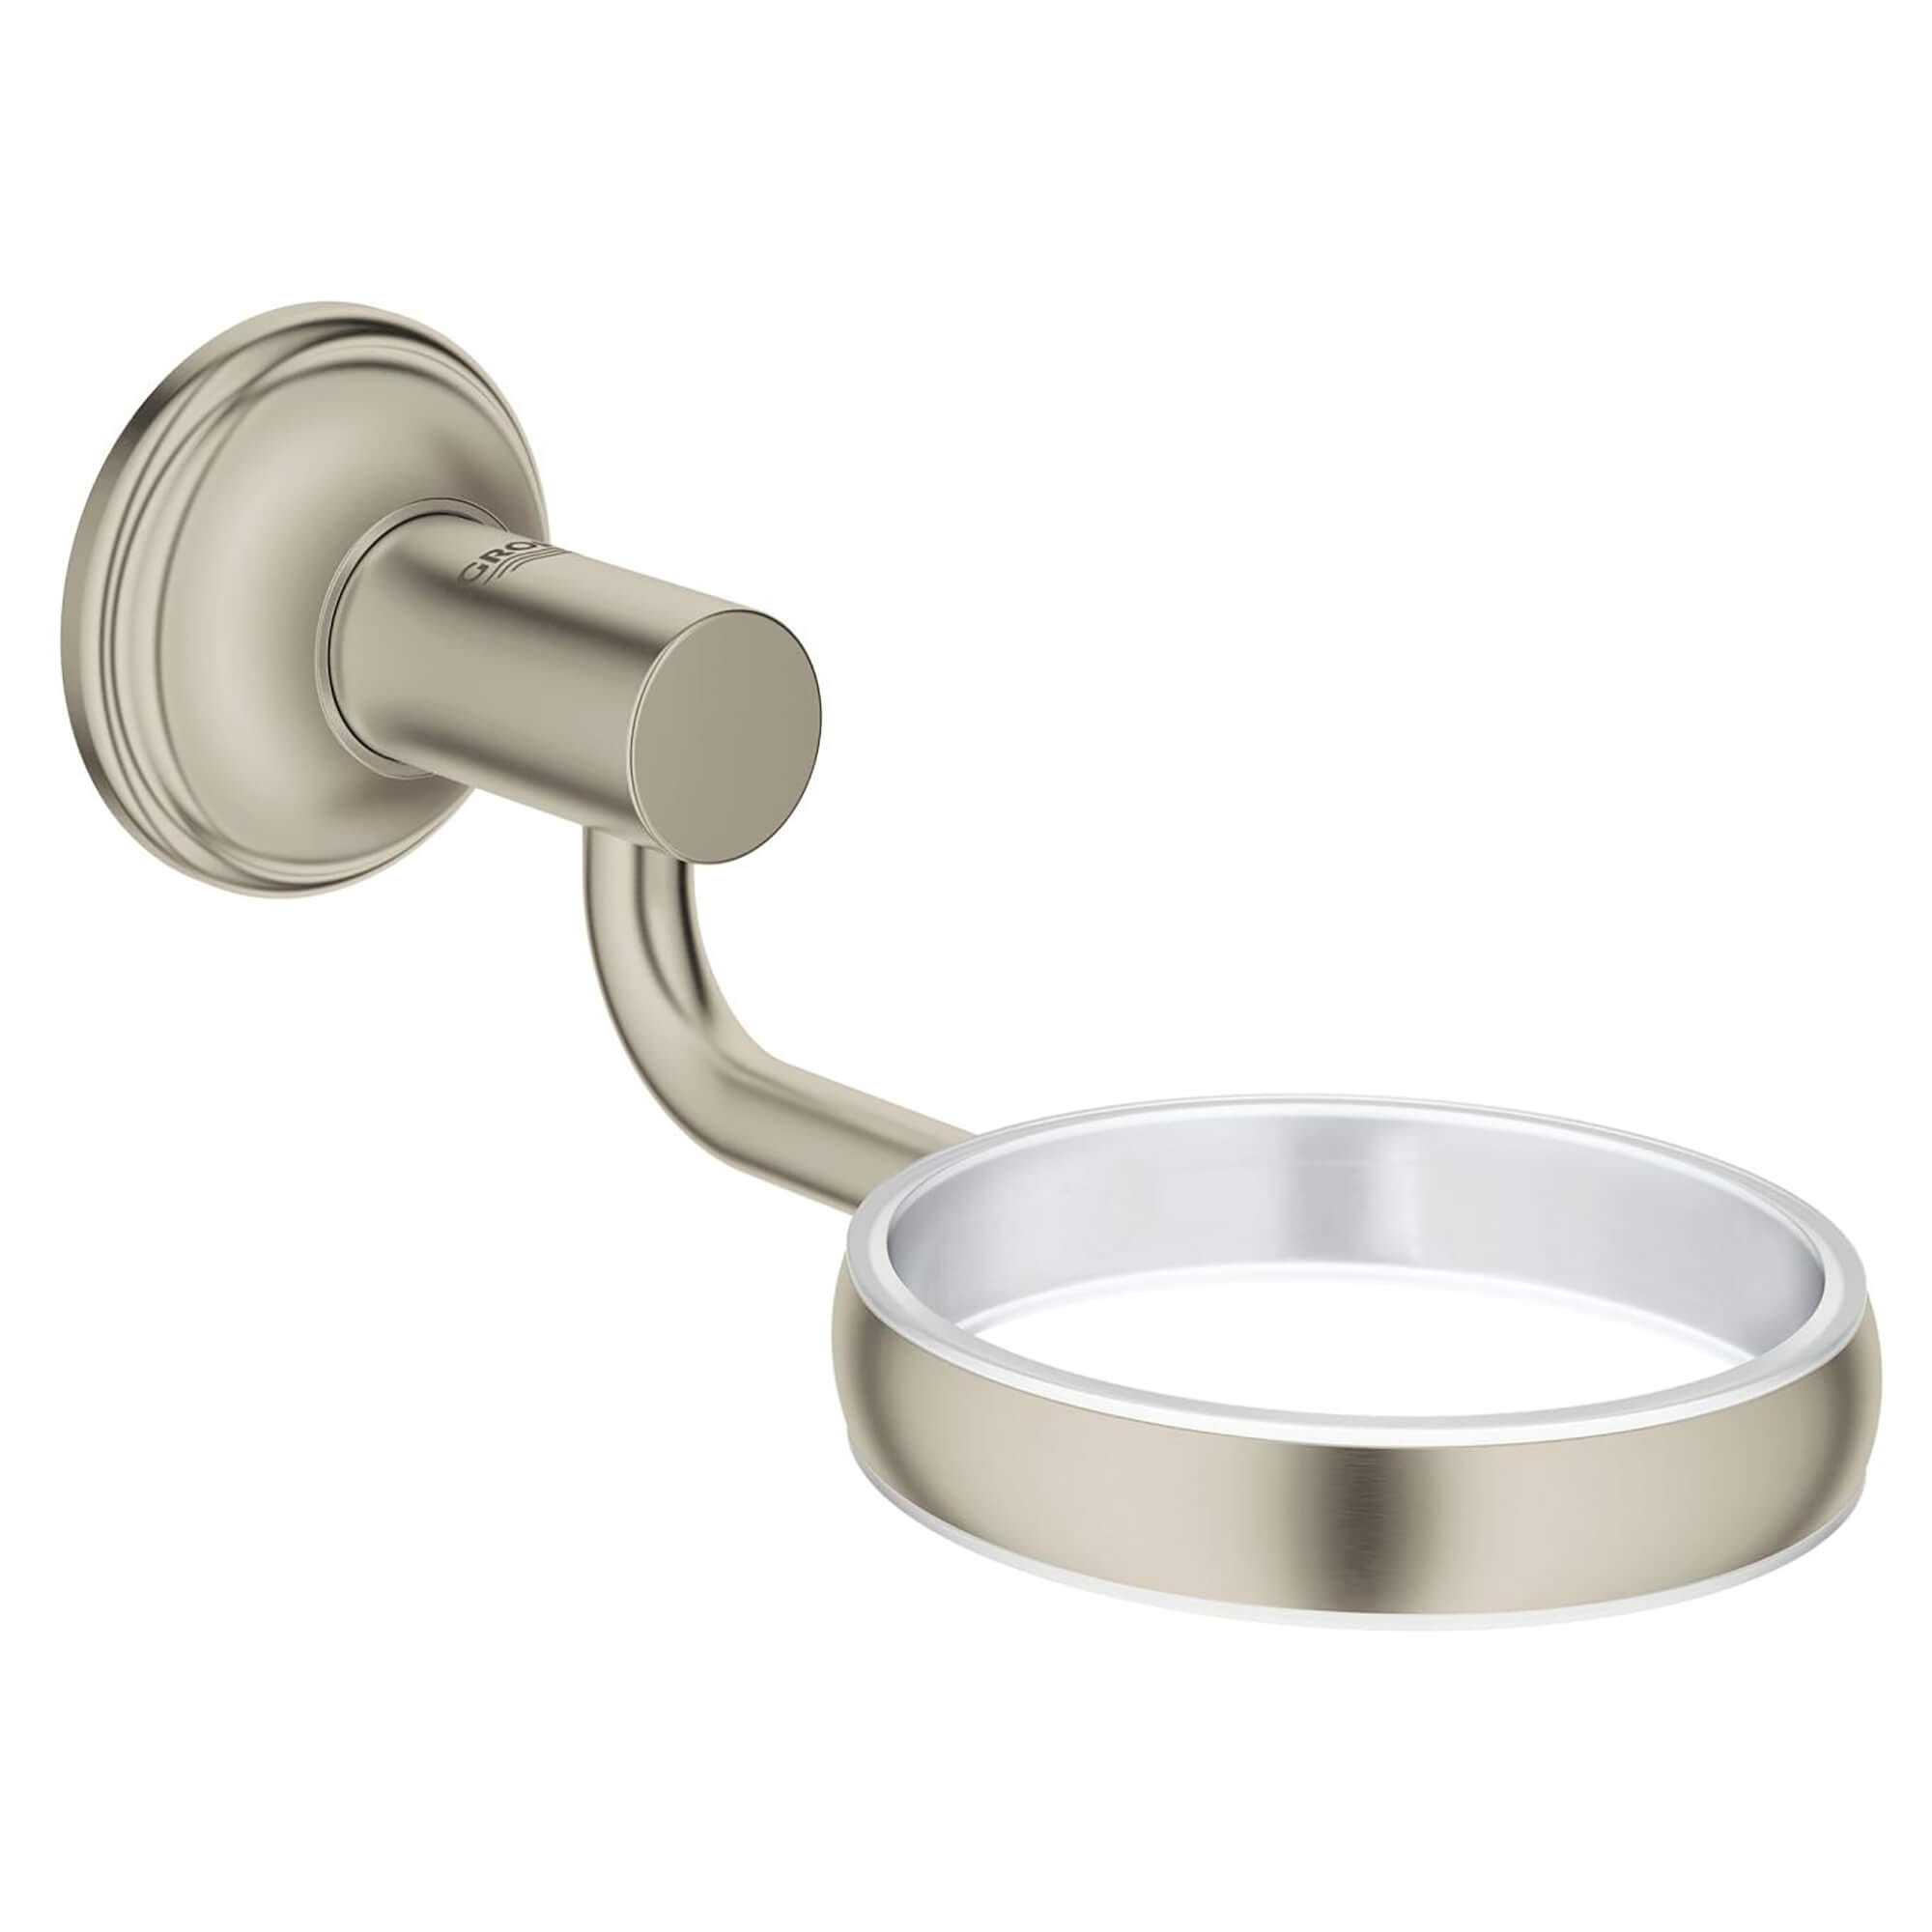 Essentials Authentic Soap Holder GROHE BRUSHED NICKEL